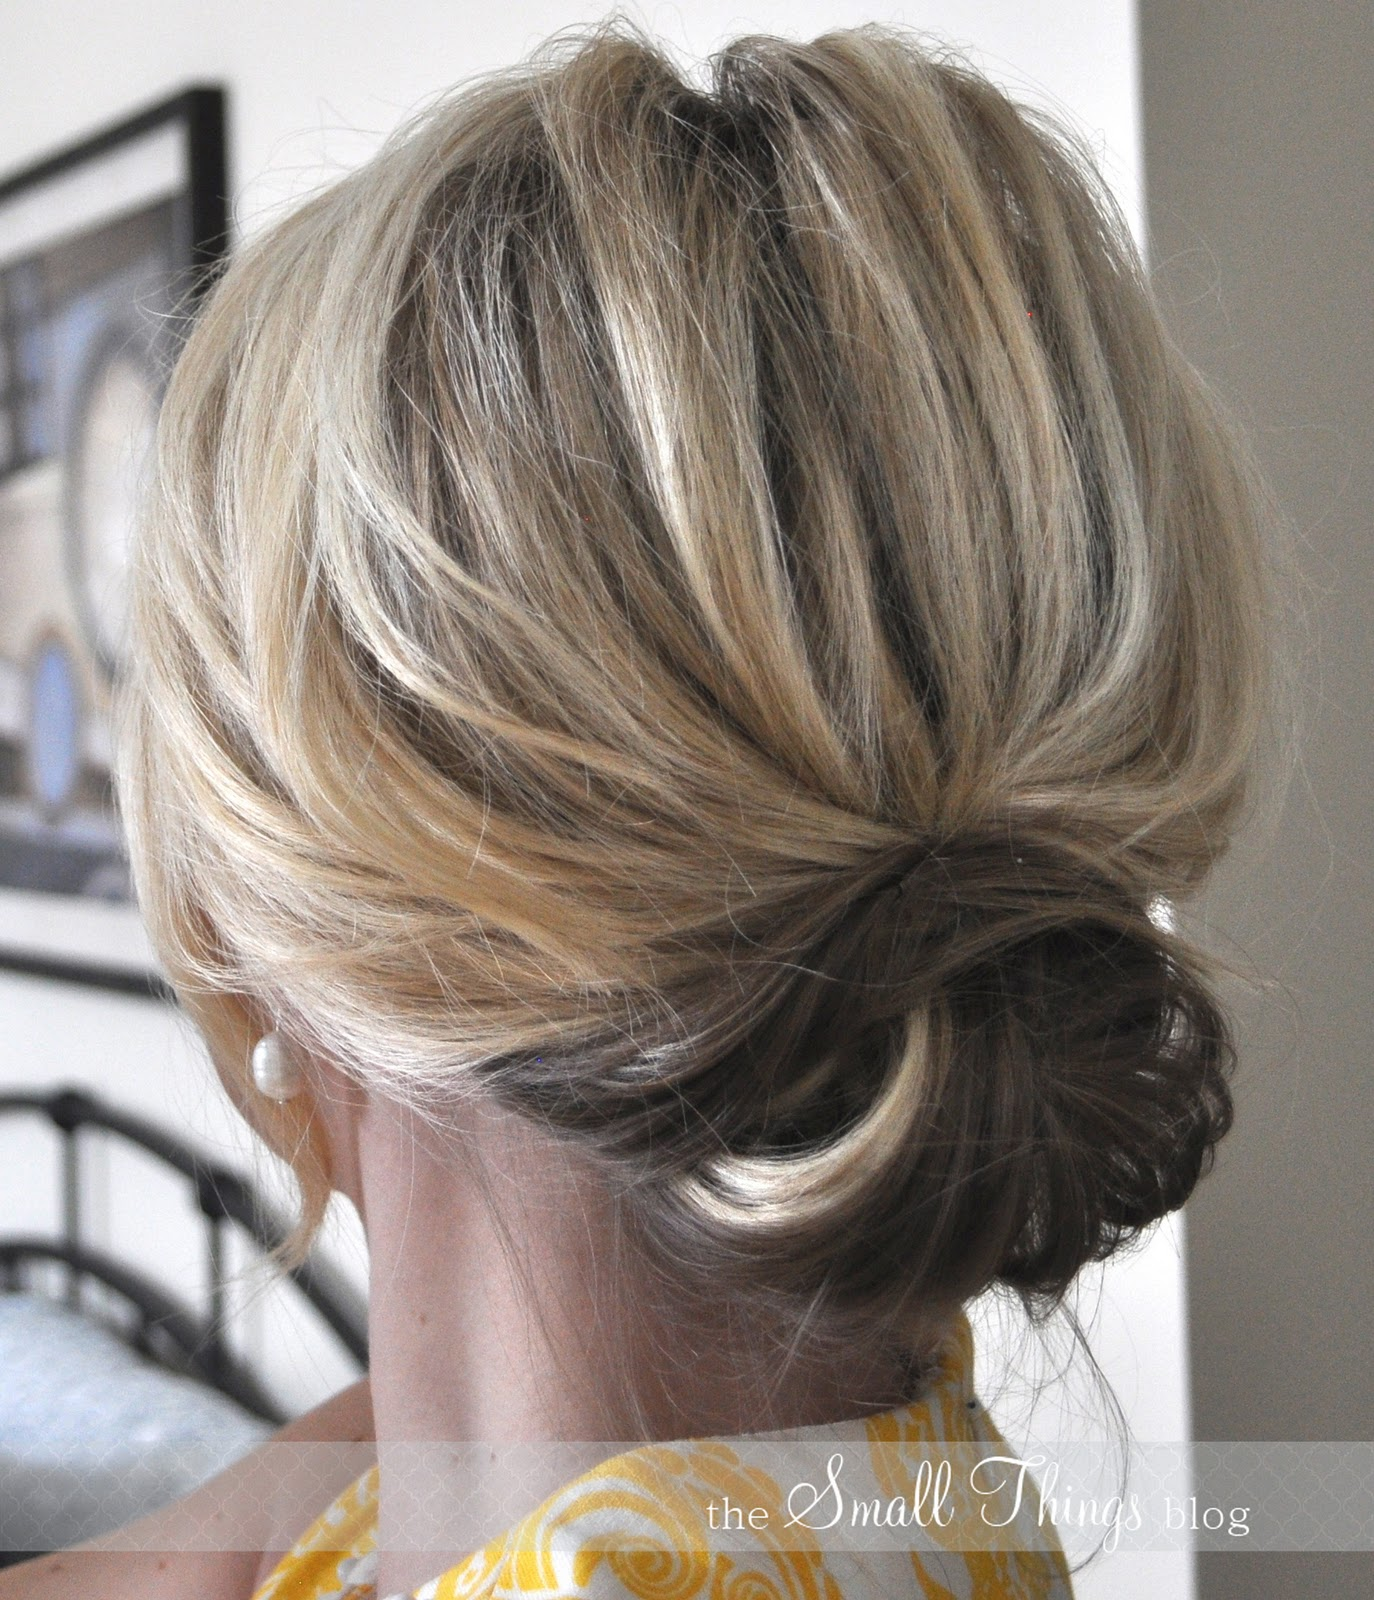 Quick And Easy Summer Hairstyles For Curly/Wavy Hair. Its summer time again the need to style the hair in a comfortable yet stylish way becomes vital.